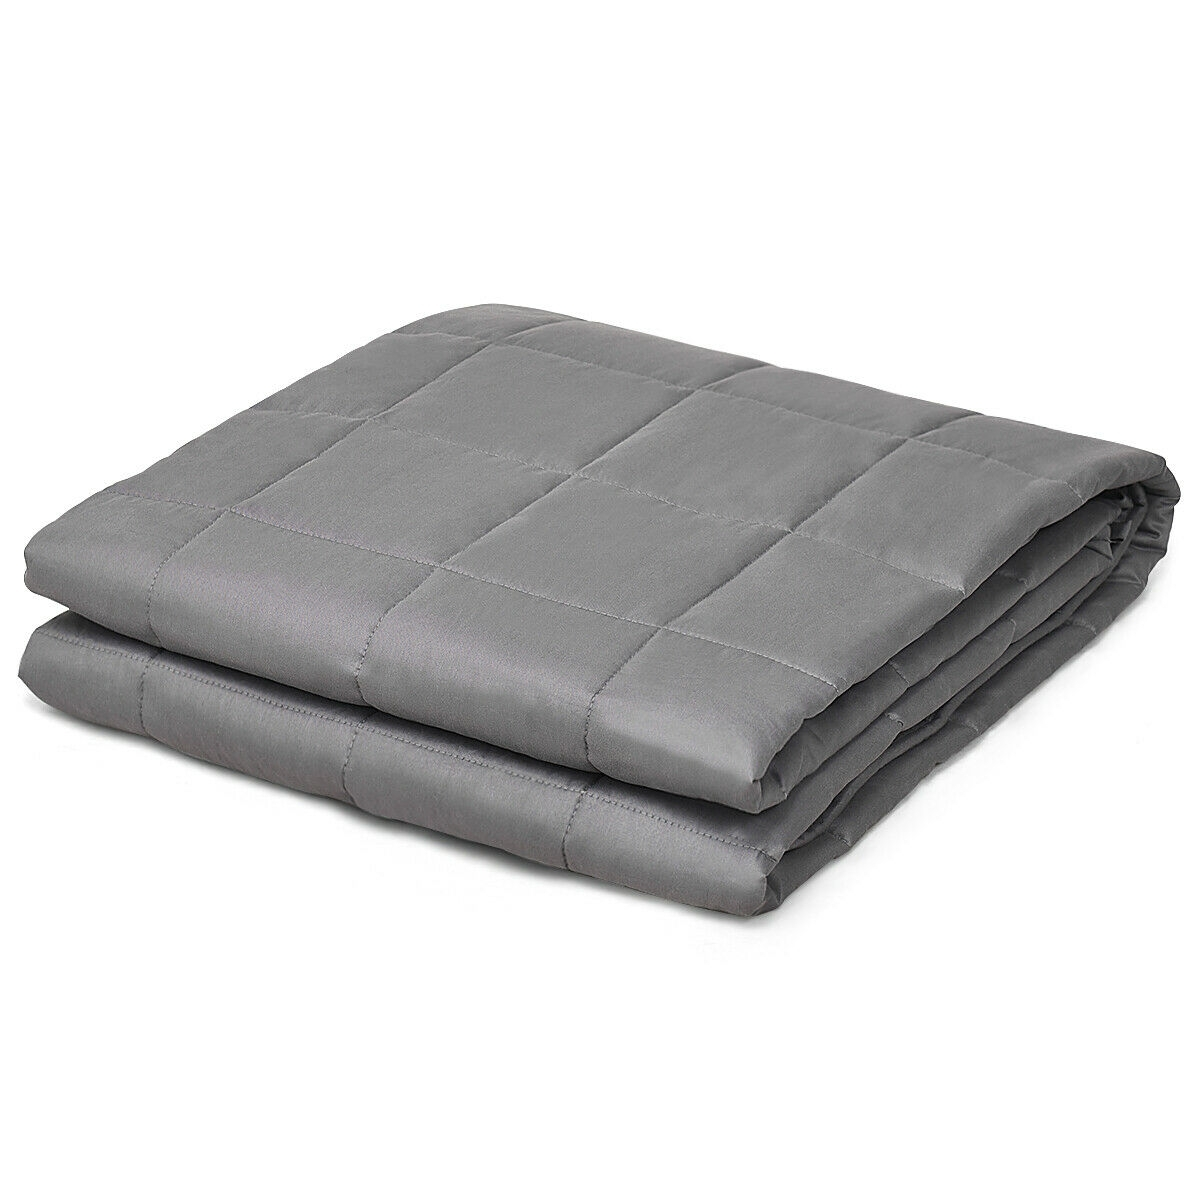 Image of 25 lbs Weighted Blankets 100% Cotton with Glass Beads